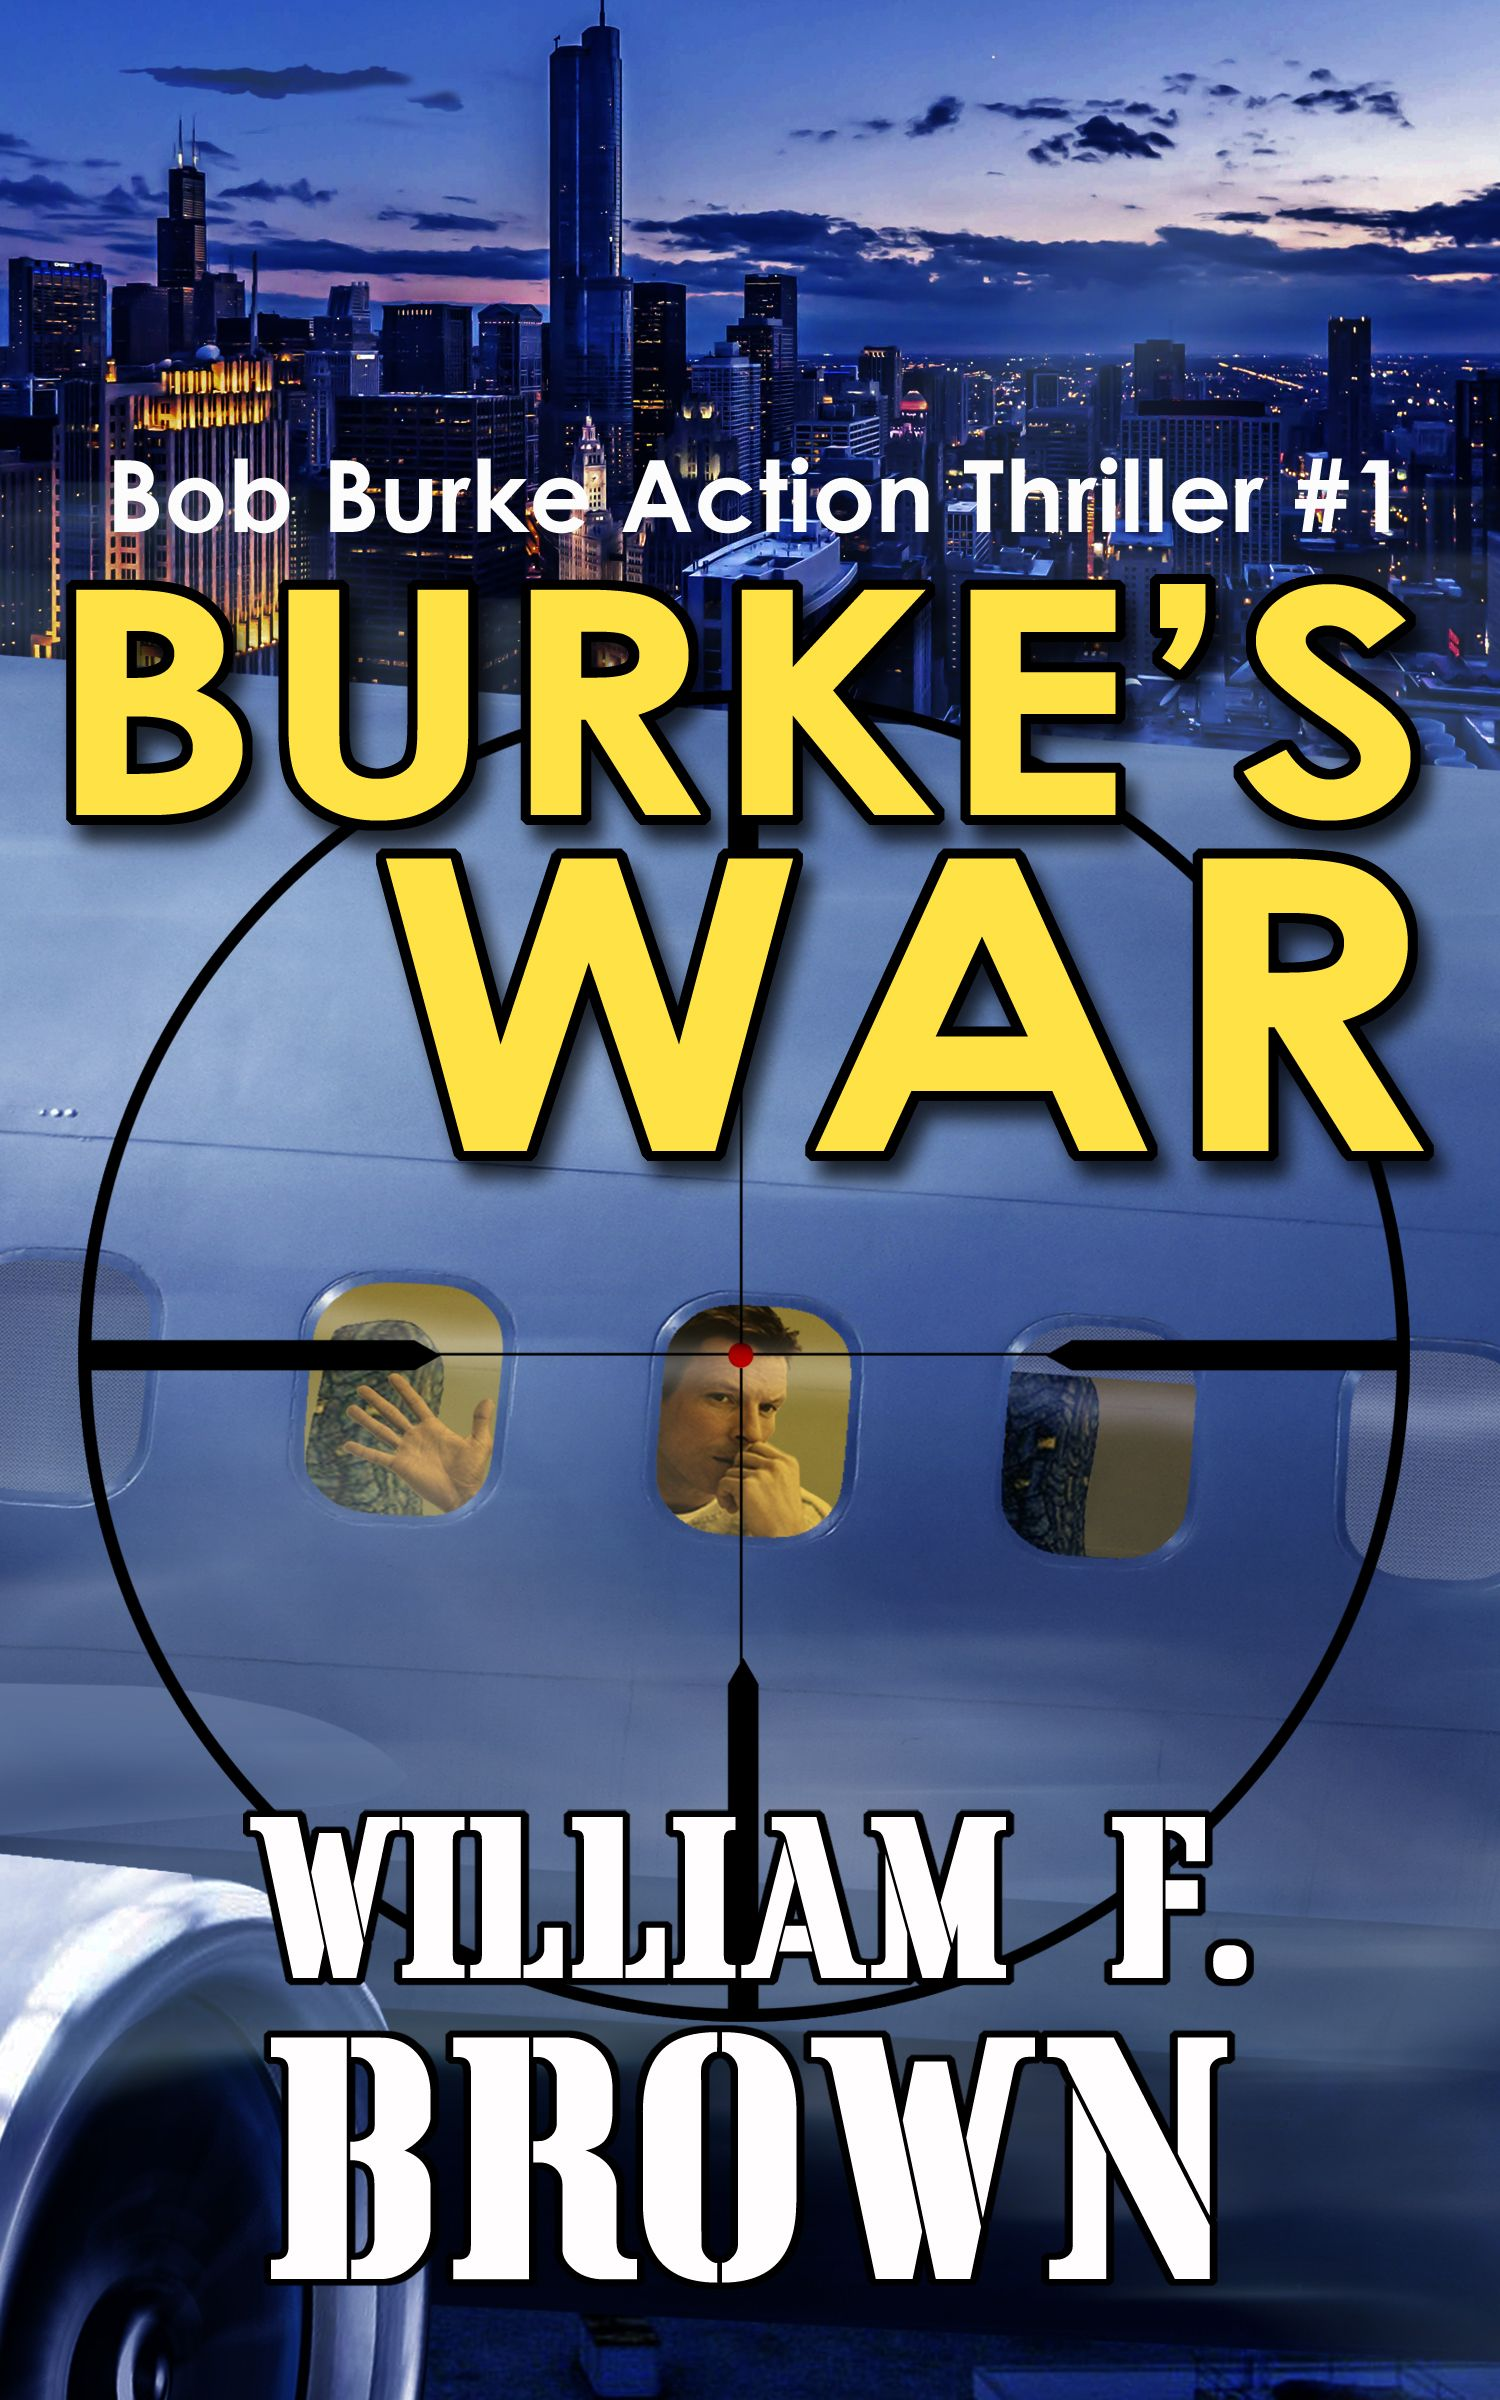 Ebook Deals On Burke's War By William F Brown, Free And Discounted Ebook  Deals For Burke's War And Other Great Books